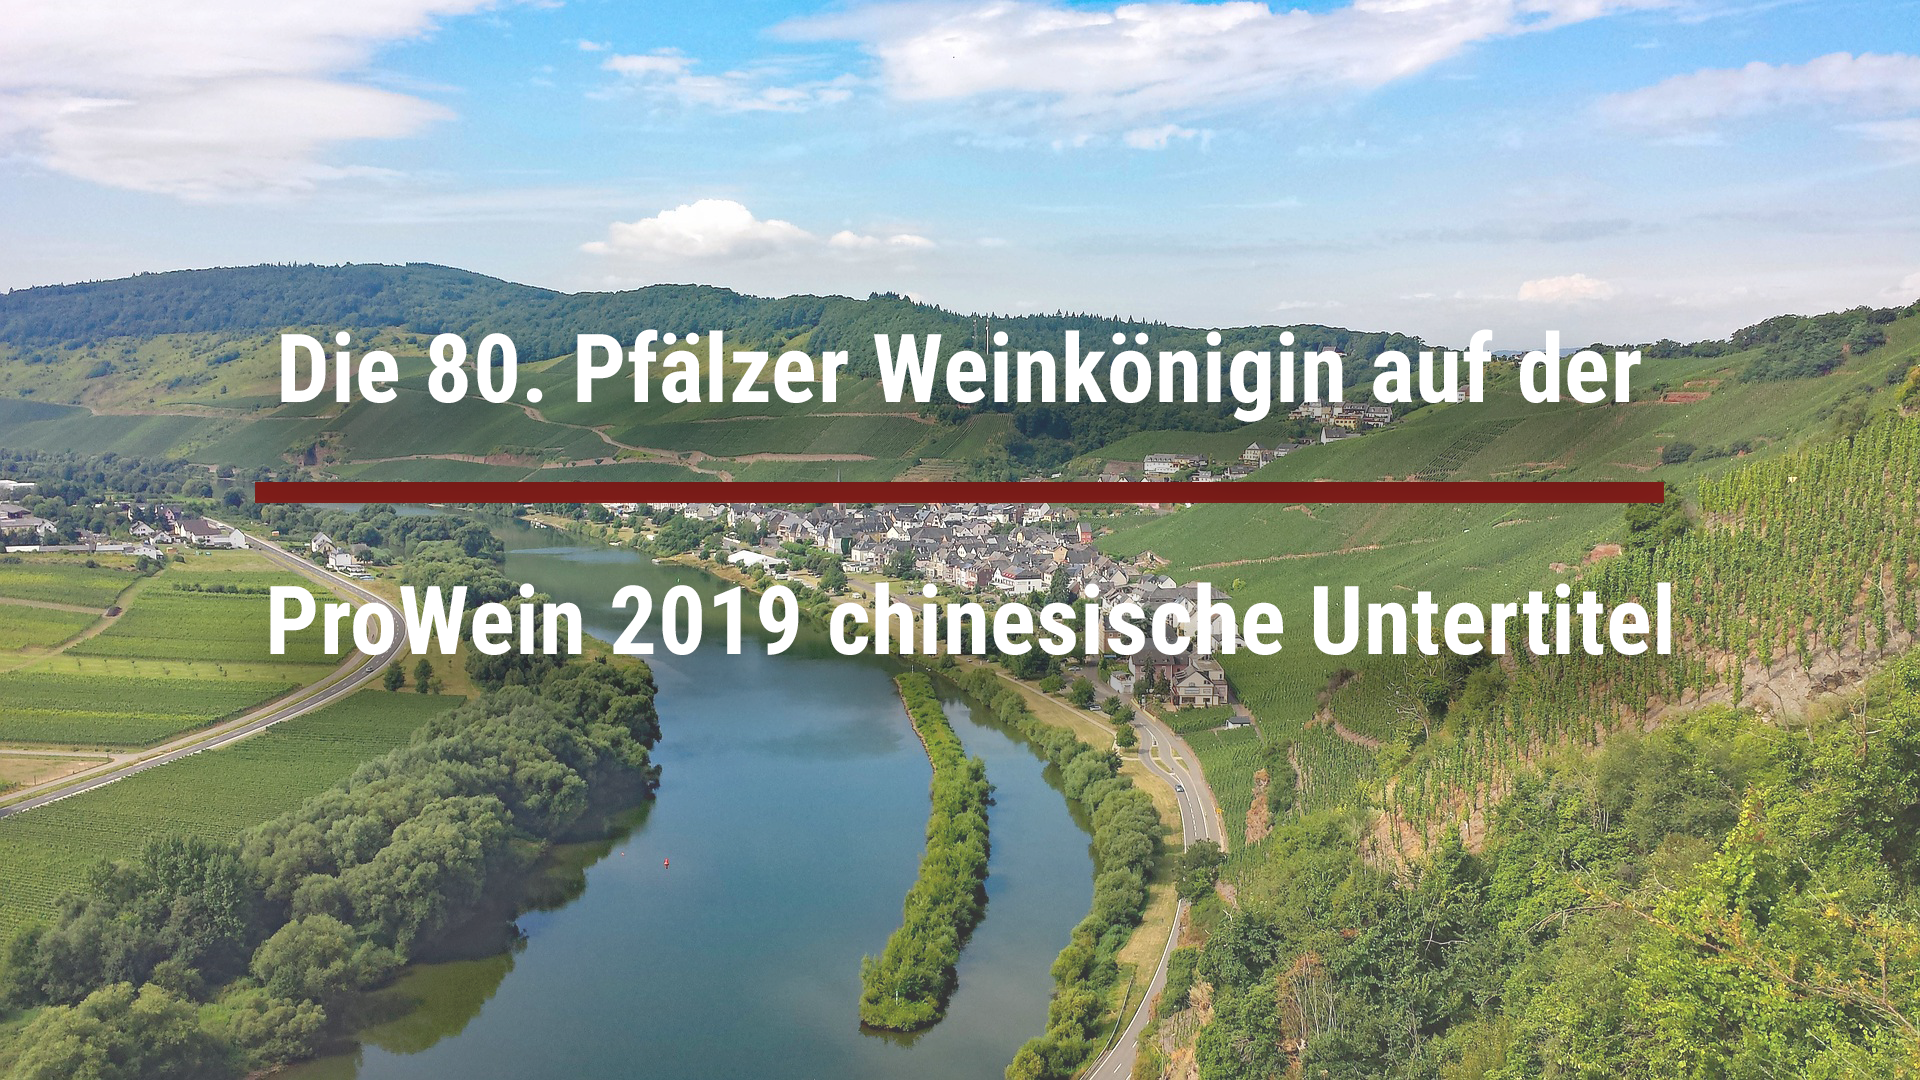 The 80th Palatinate Wine Queen at ProWein 2019 – Chinese subtitles